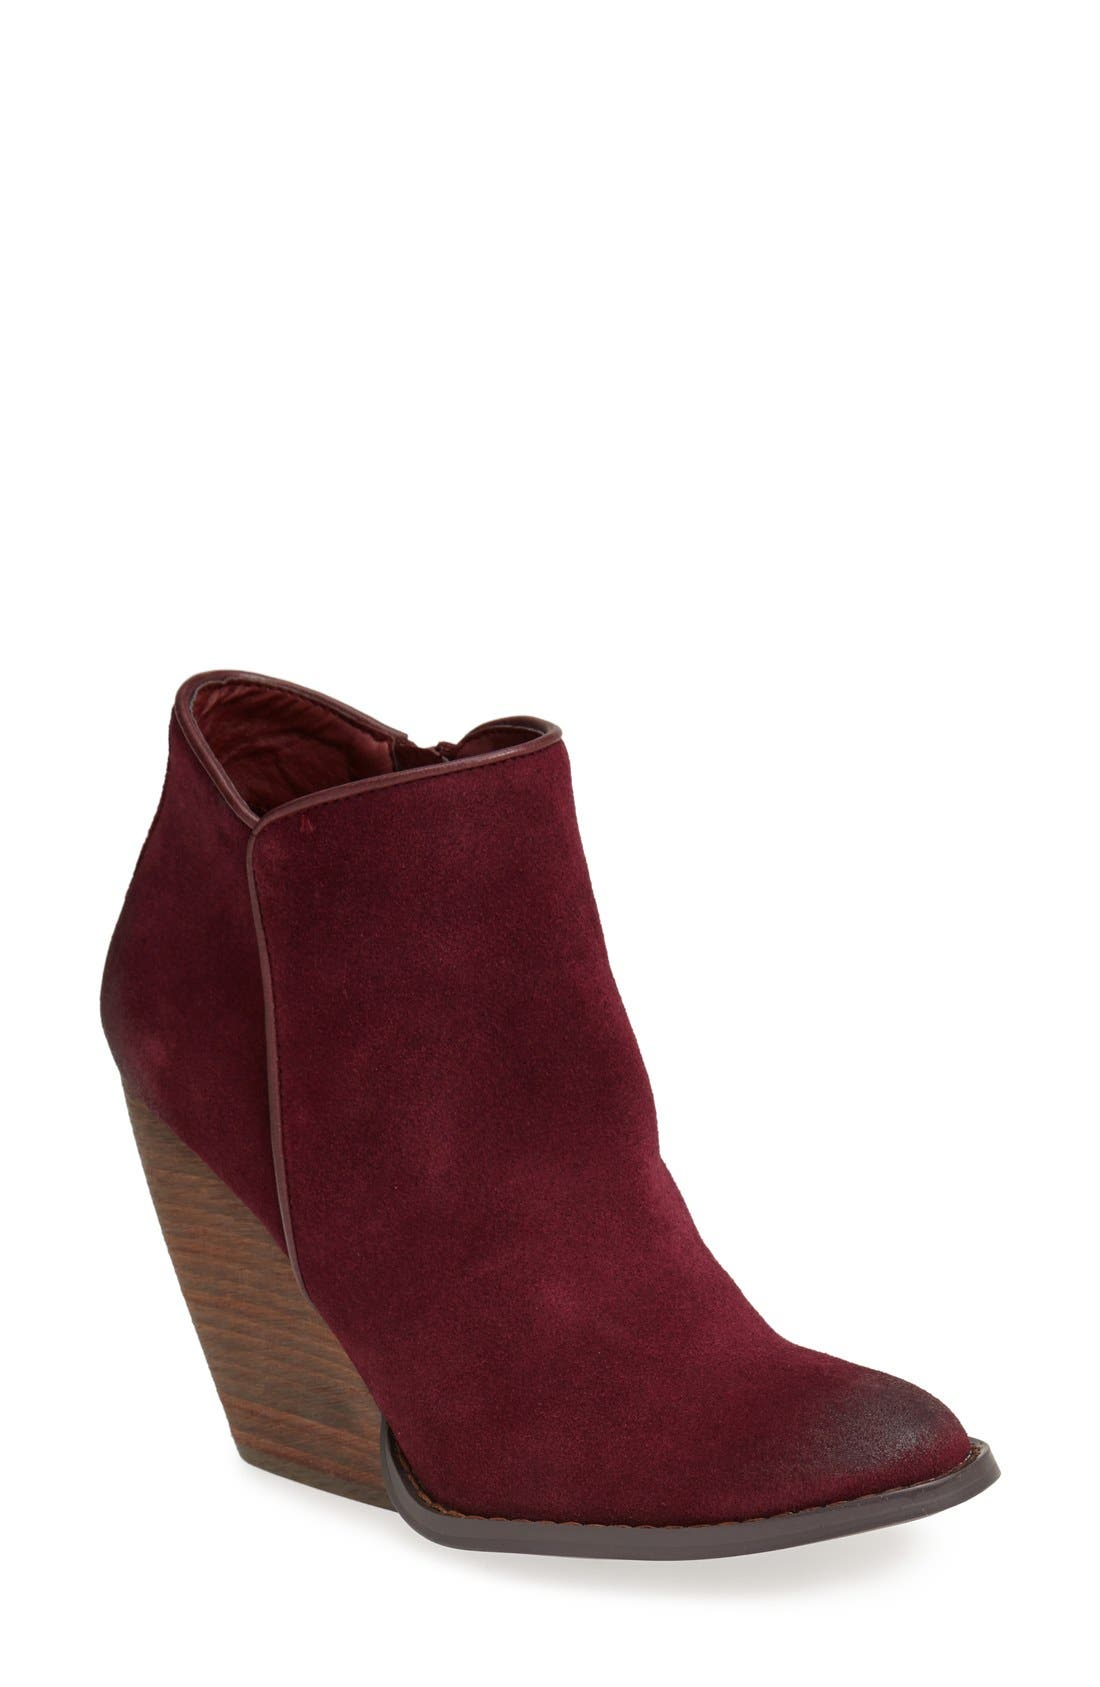 Main Image - Very Volatile 'Whitby' Demi Wedge Bootie (Women)